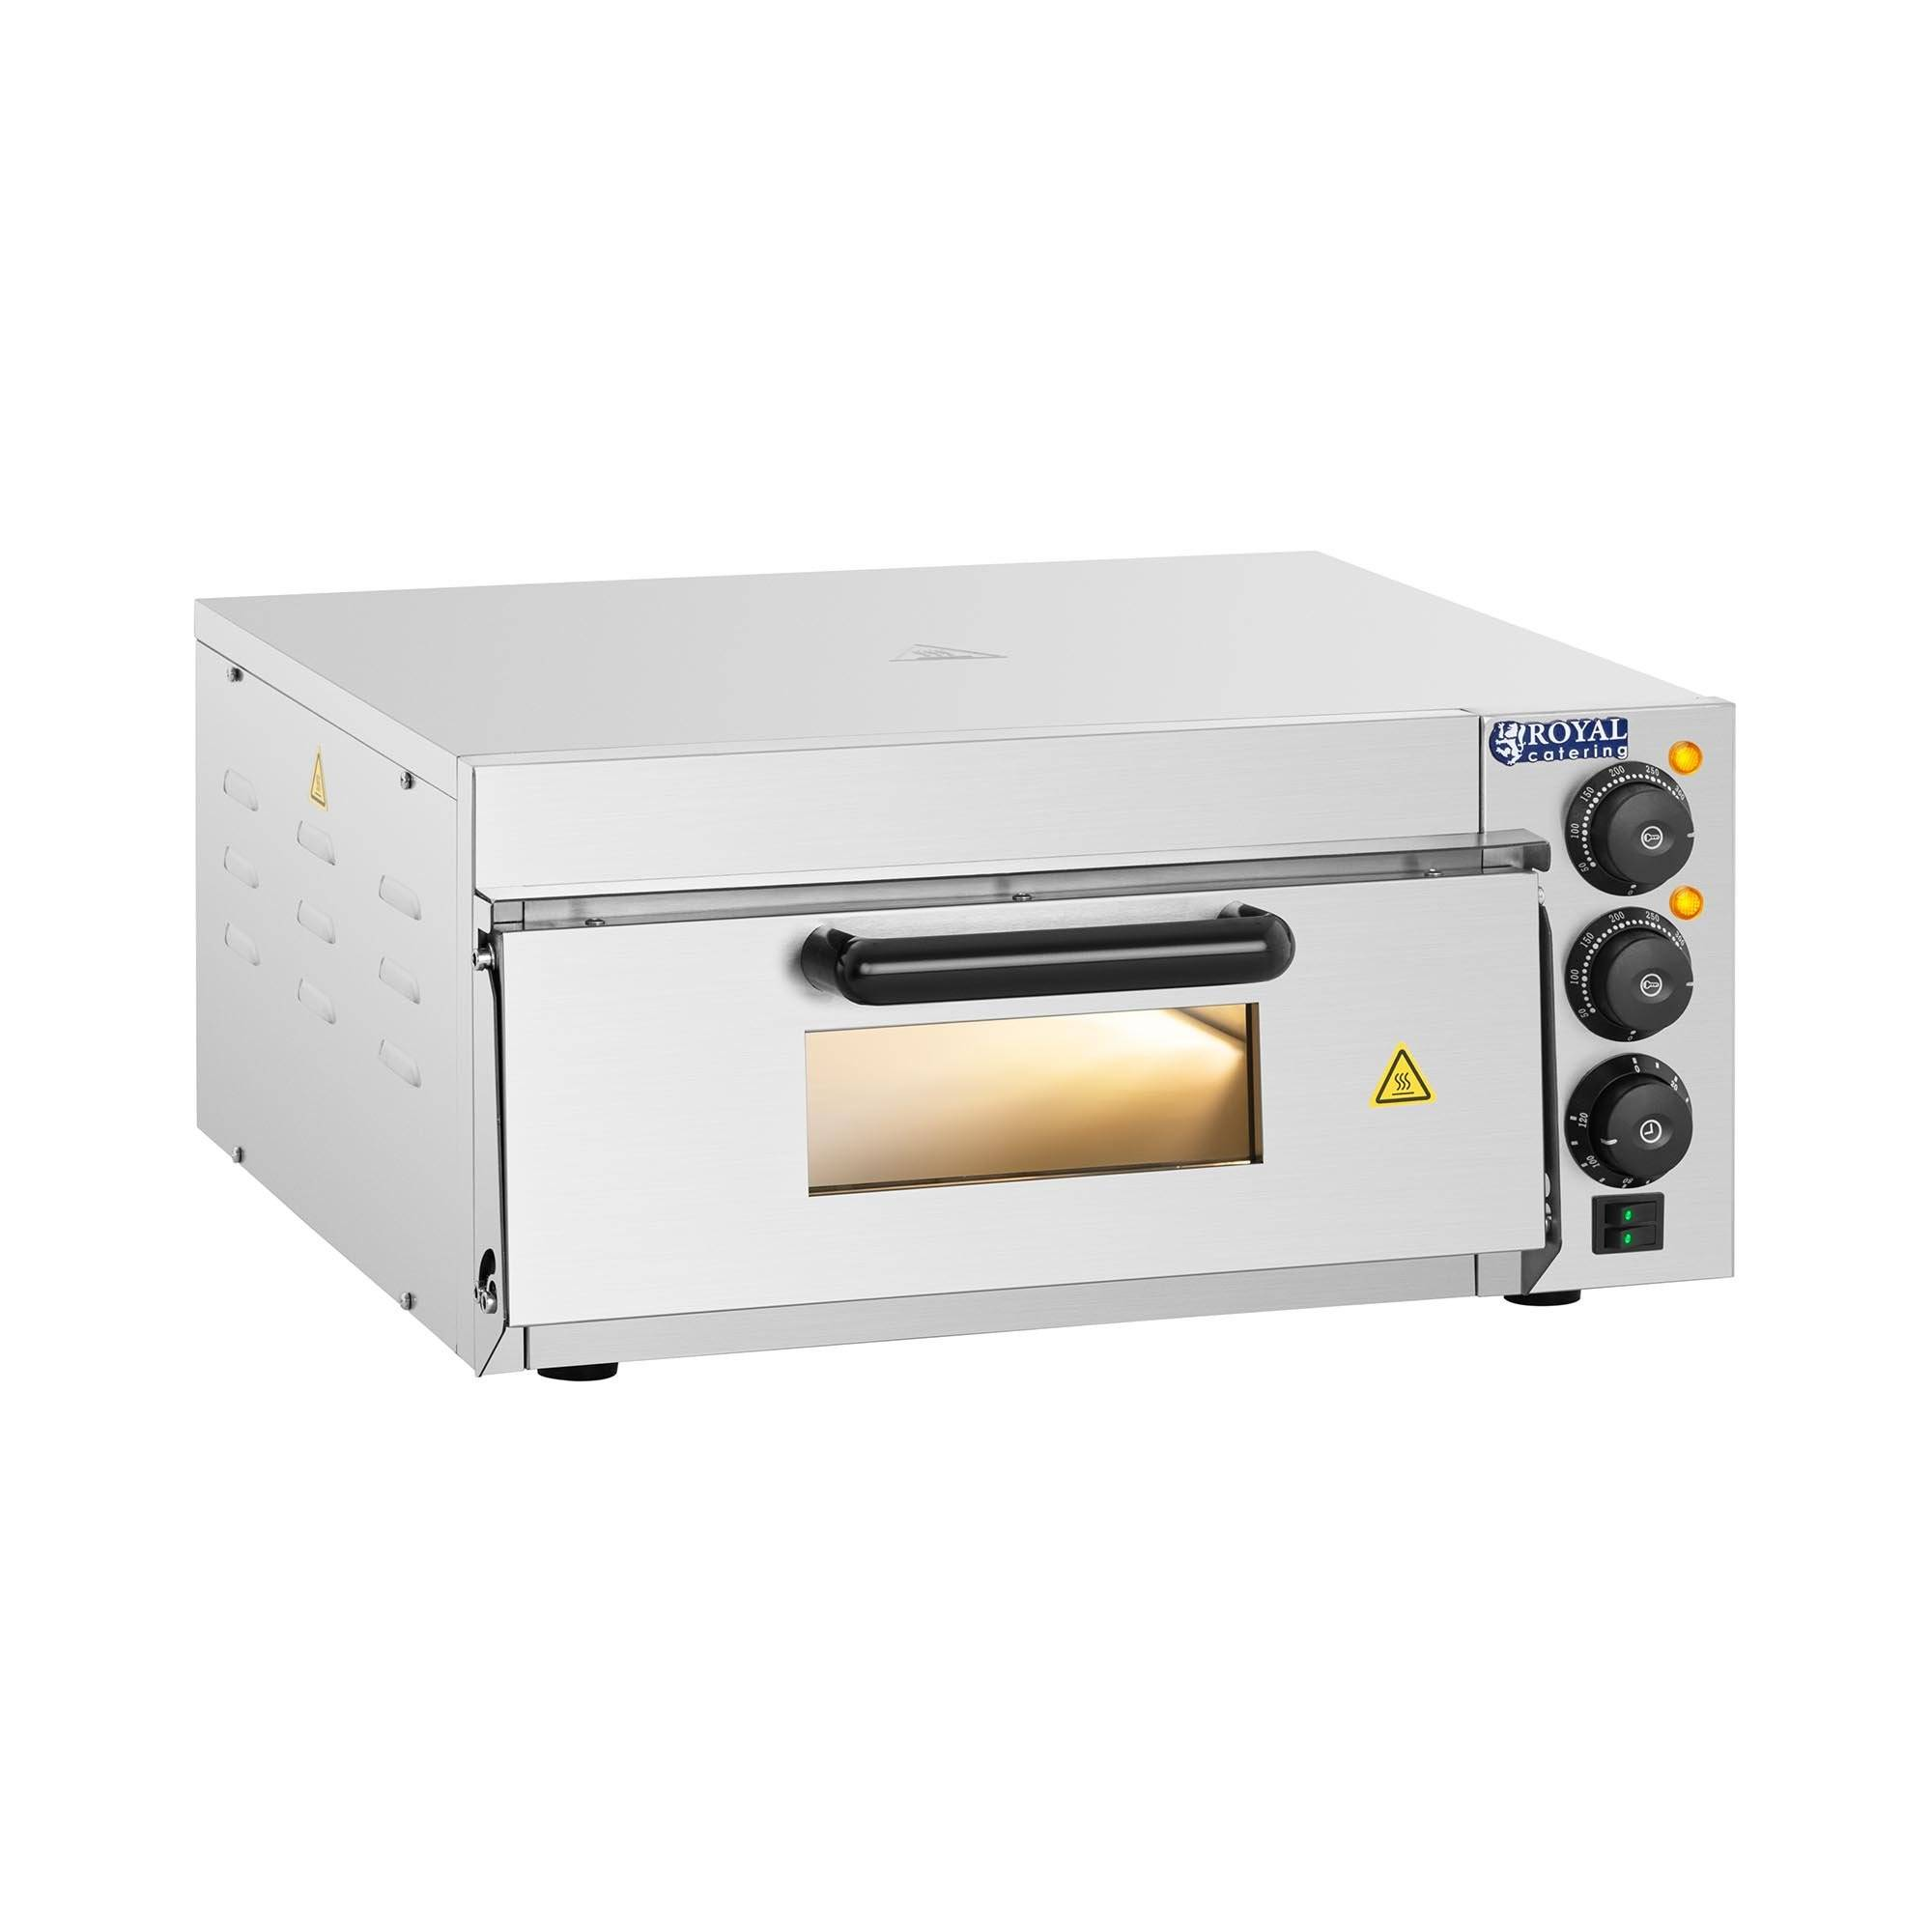 Royal Catering B-WARE Pizza Oven - 1 chamber - 2,000 W RCPO-2000-1PE